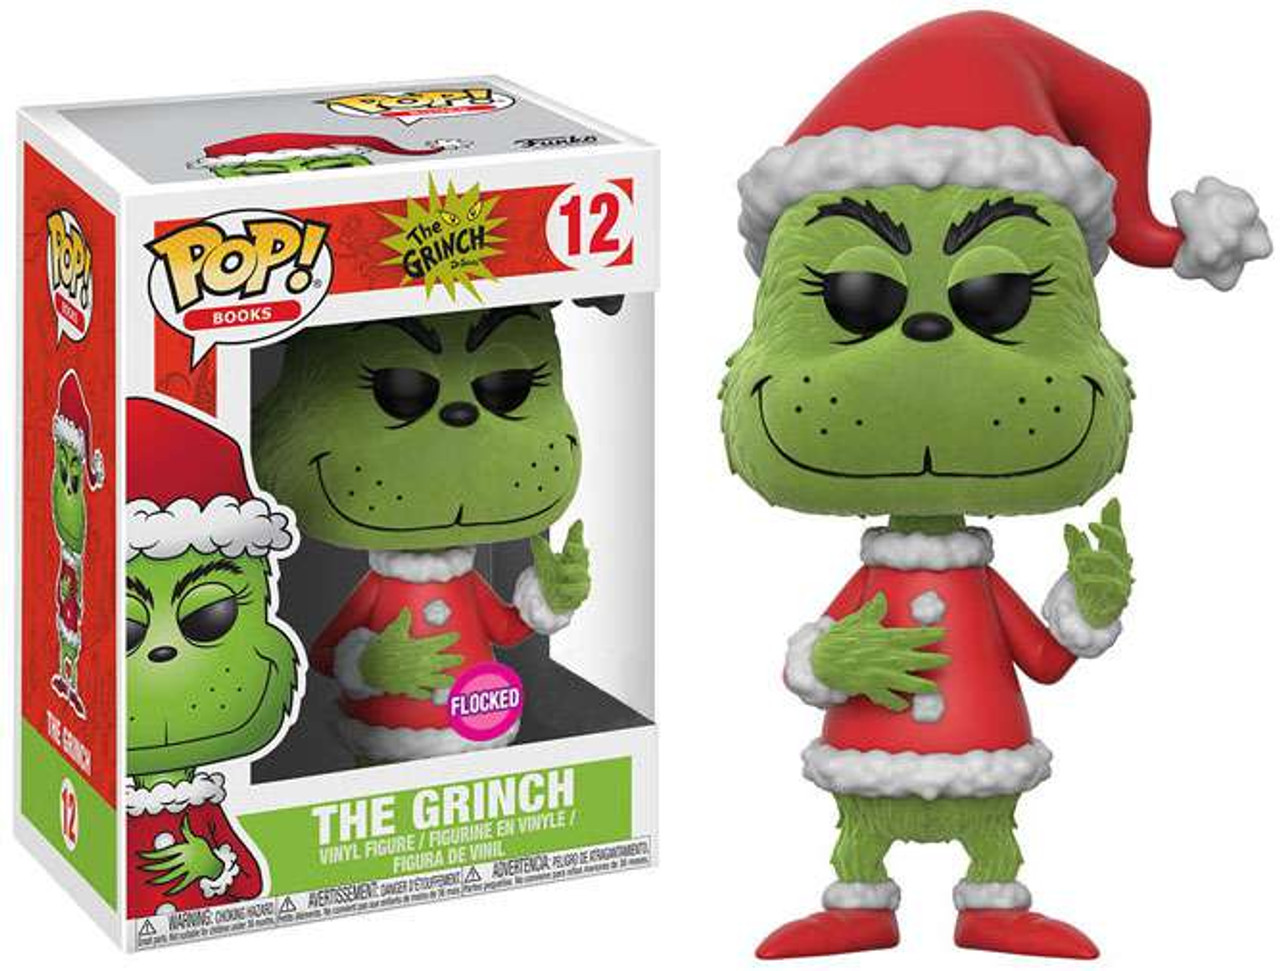 4afad6096fd Funko Dr. Seuss POP Books The Grinch Exclusive Vinyl Figure 12 Flocked -  ToyWiz